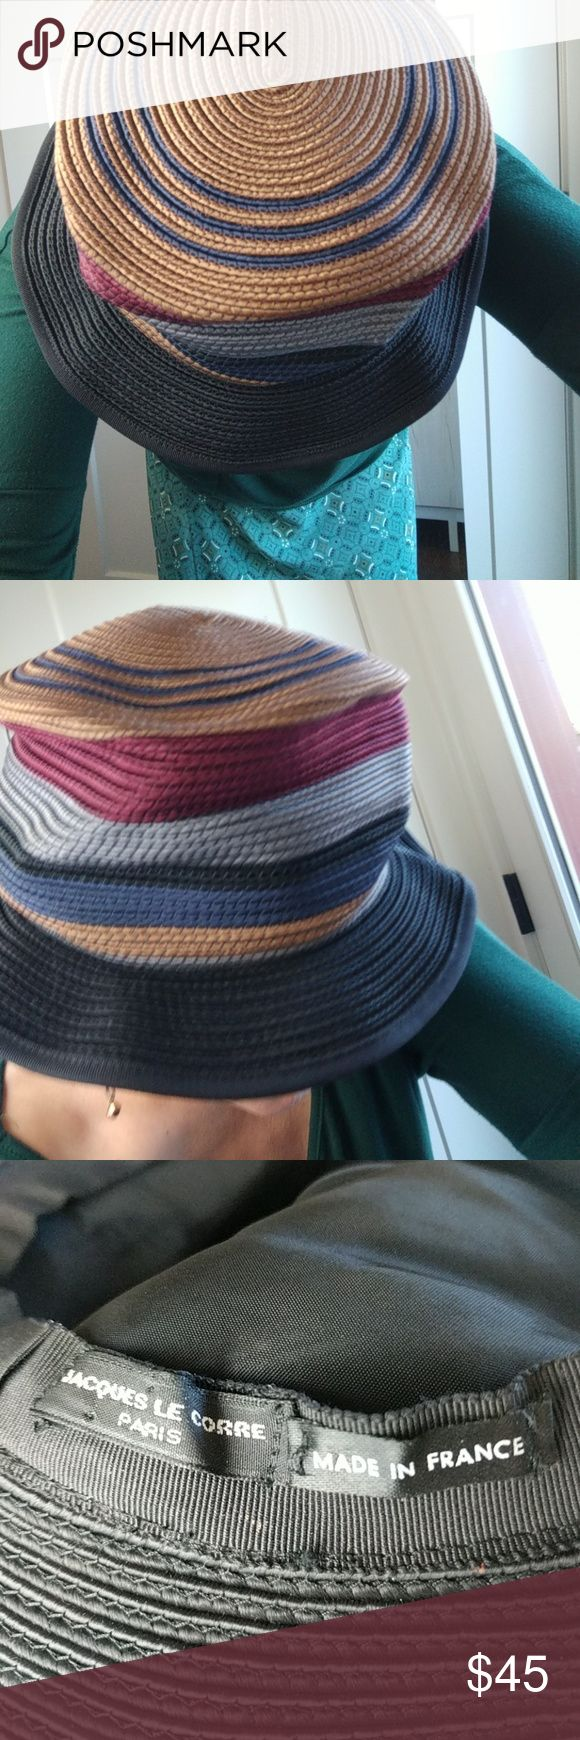 """Rope hat multicolored made in Paris France M Jacques Le Corre richly colored rope style hat.  Copper, navy, burgundy, steel grey, and black.  Has a sheen to it.  8"""" across diameter; 4.5"""" tall, with a 2"""" brim. Jacques Le Corre Accessories Hats"""